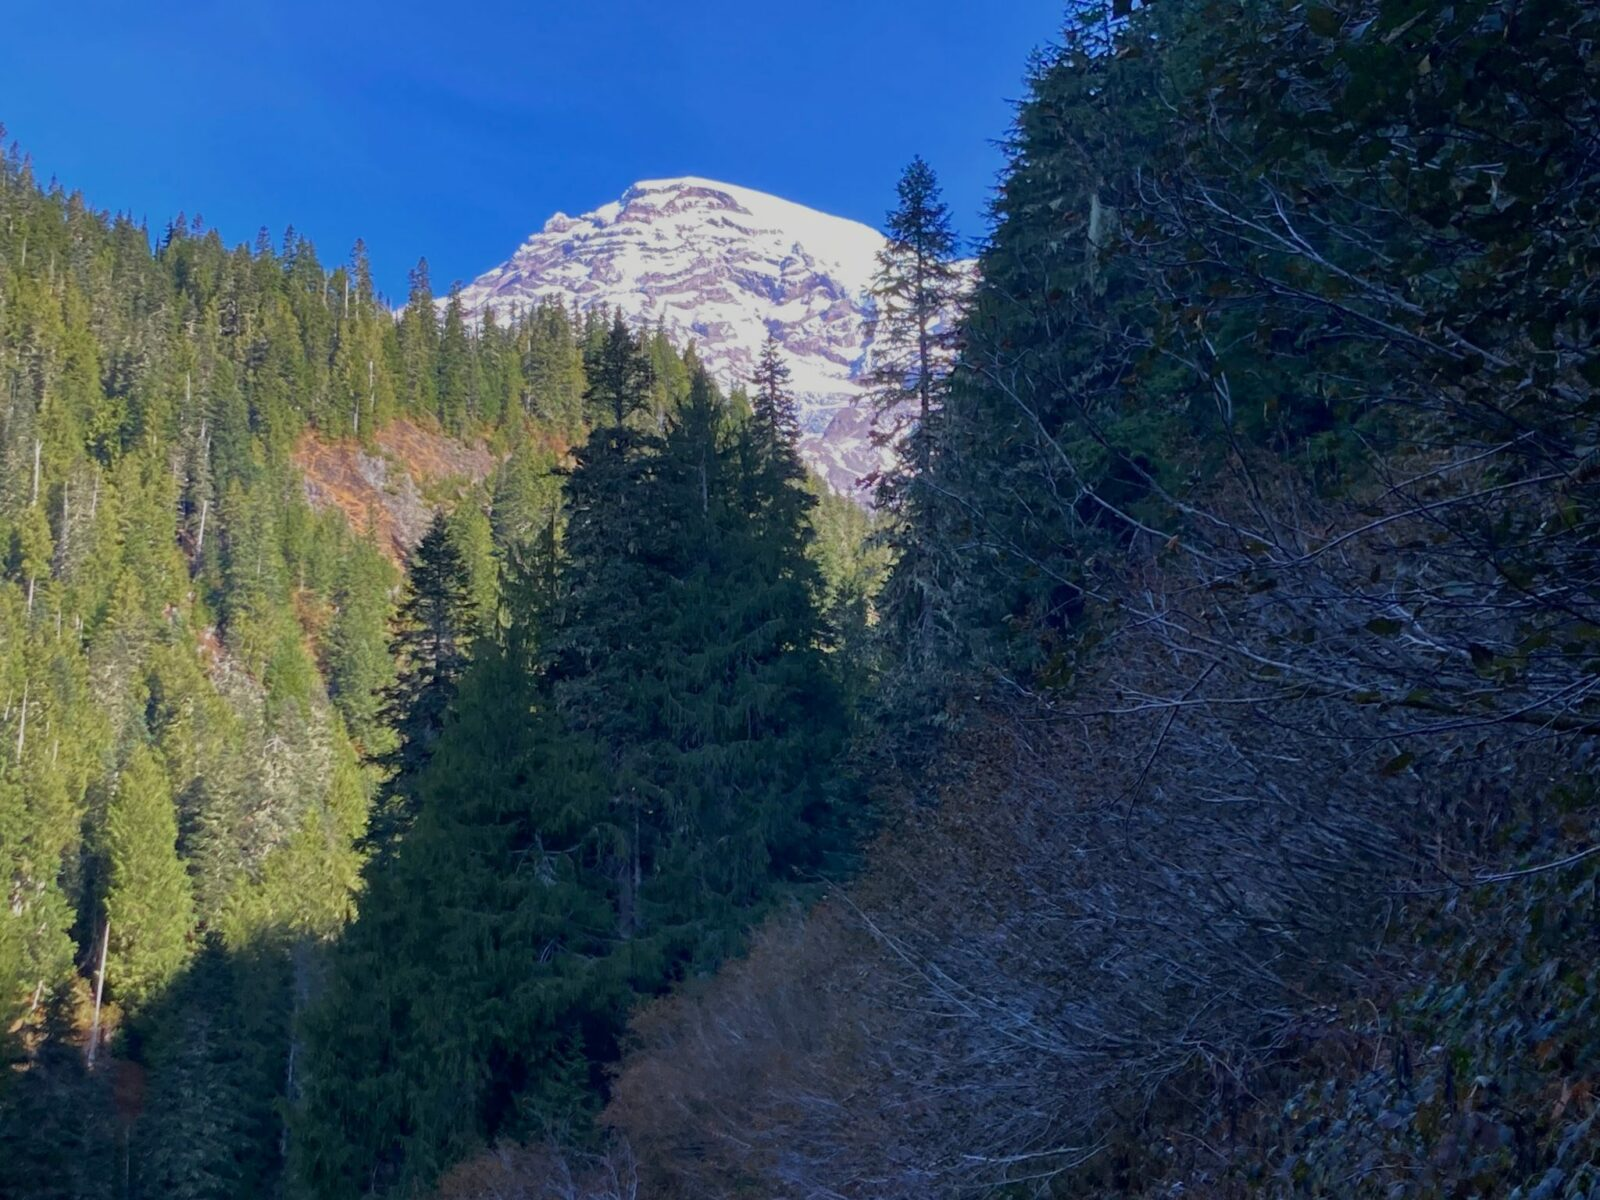 Mt Rainier is snow covered and visible in the distance in the sun. The foreground is a trail through bushes and forest in the shade